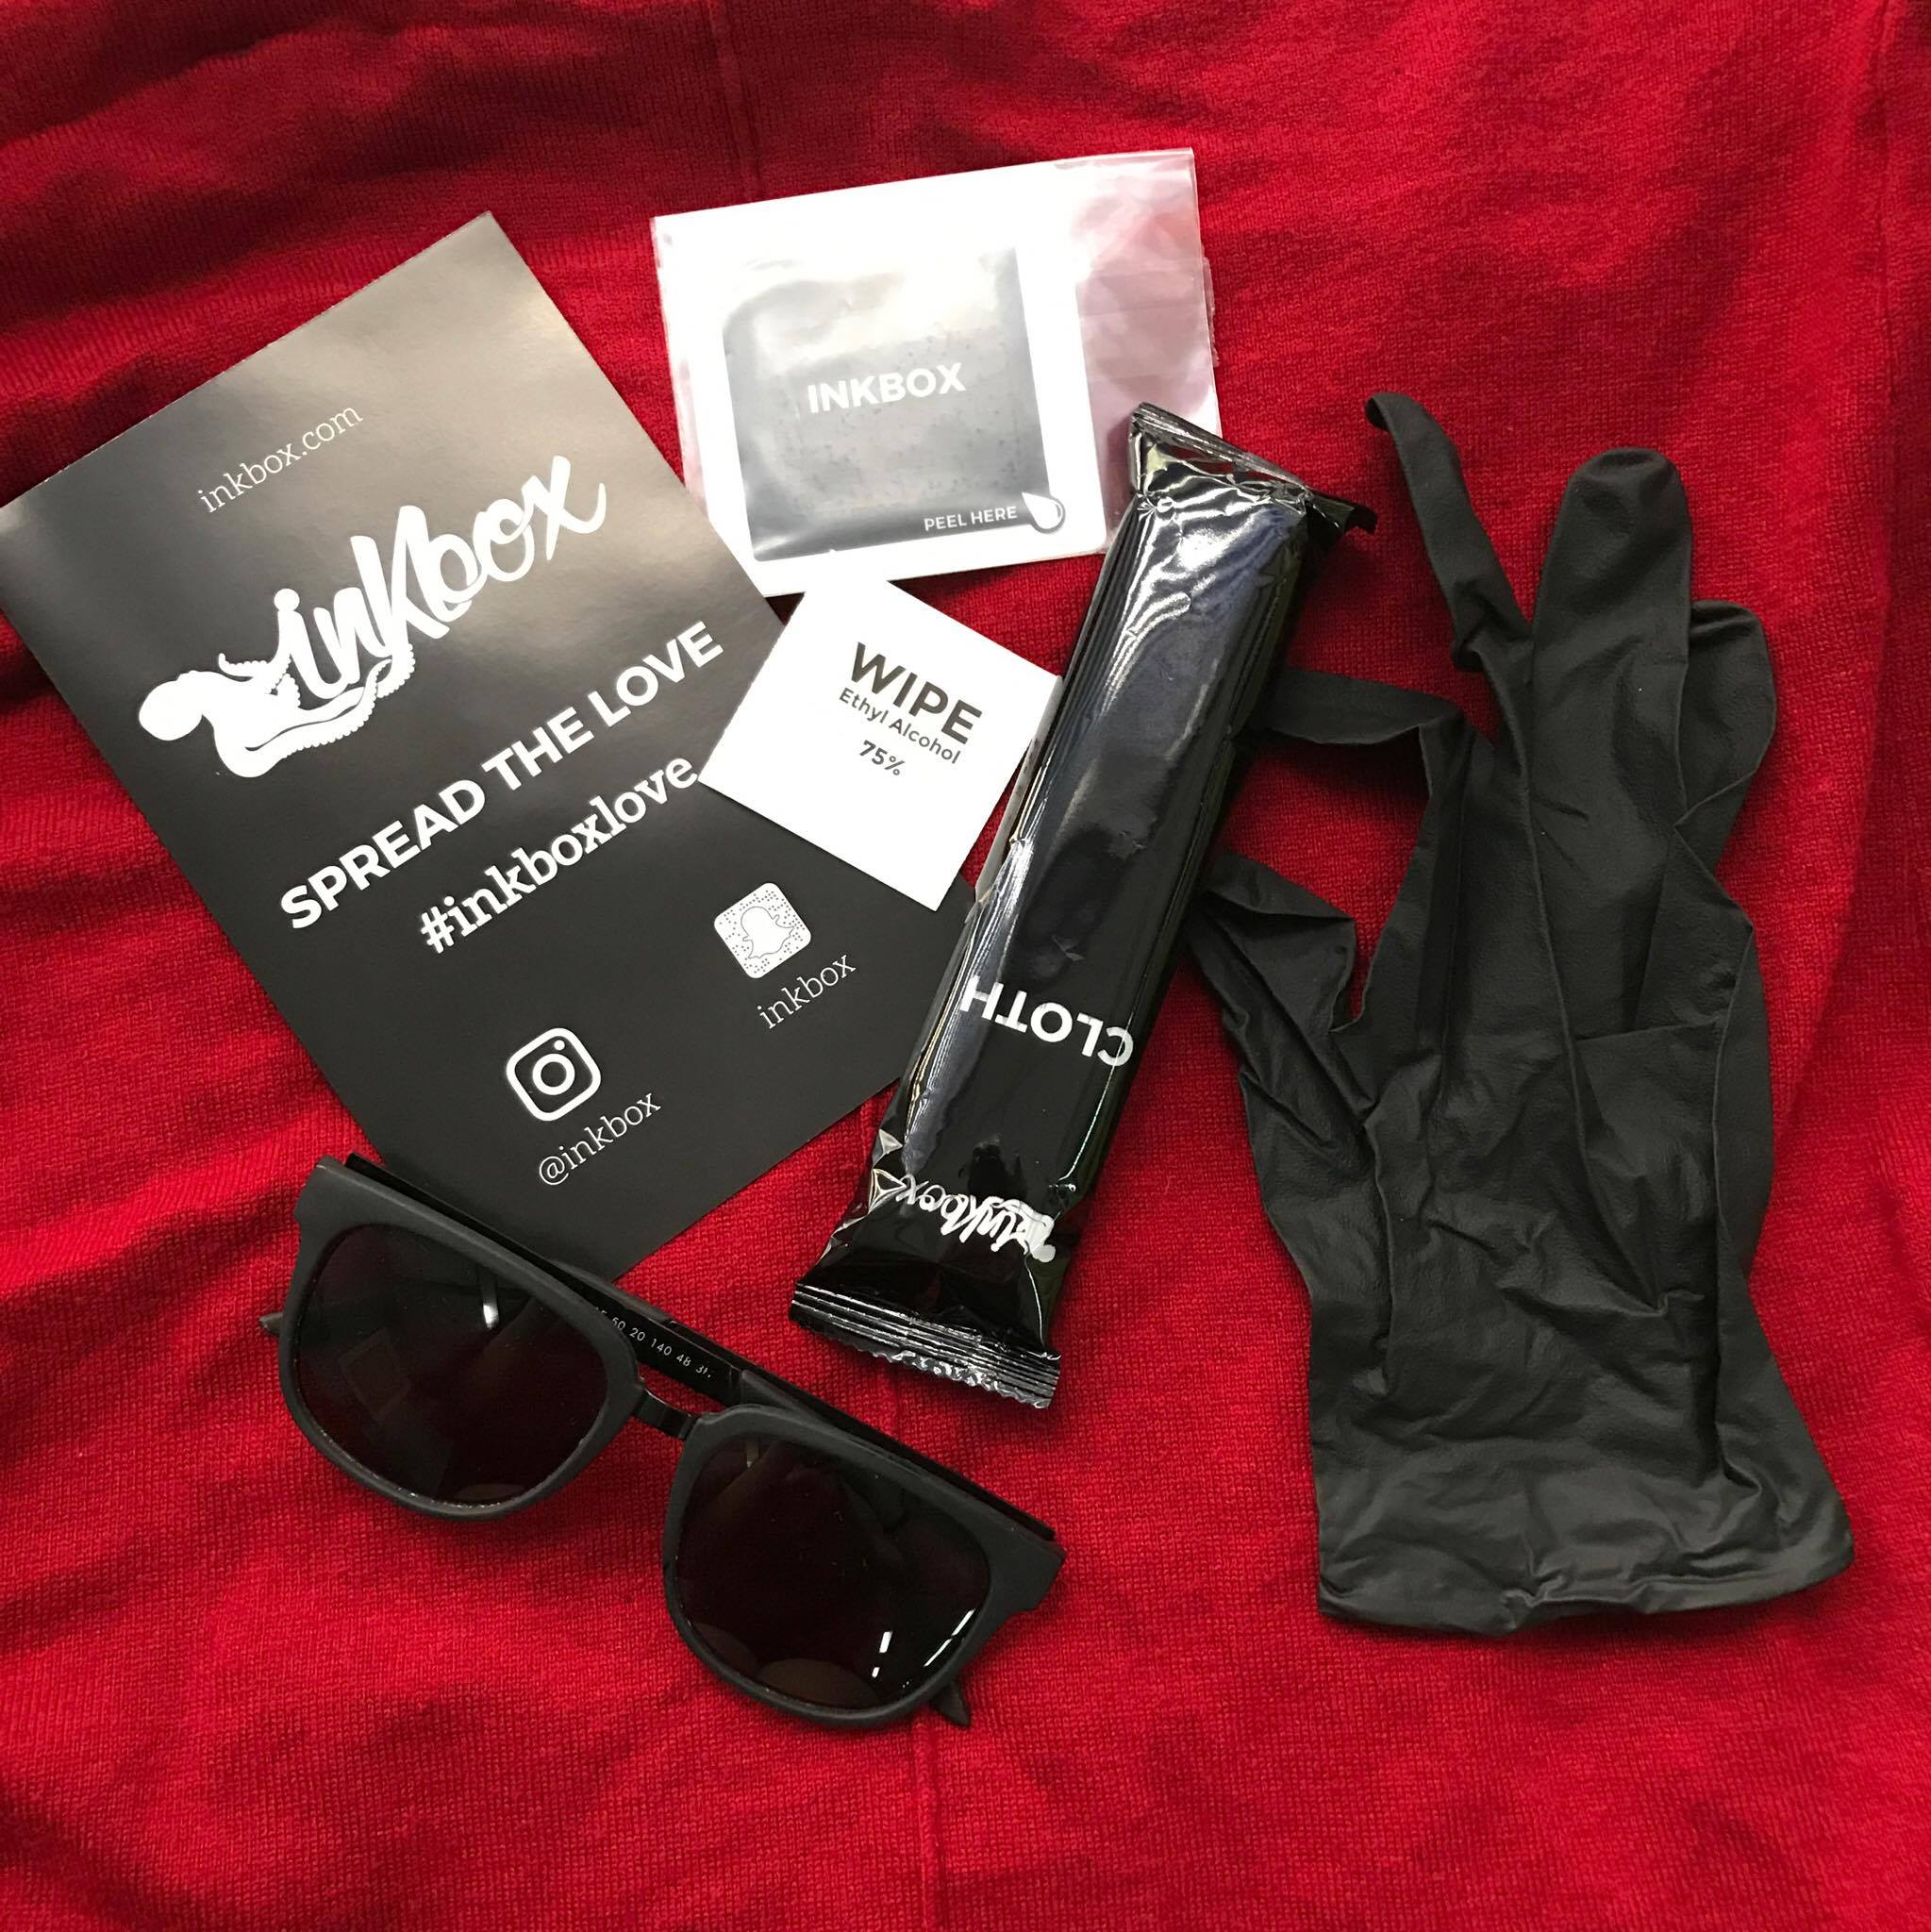 Sunglasses are from Sunnies. Not included in kit. For aesthetic purposes only.